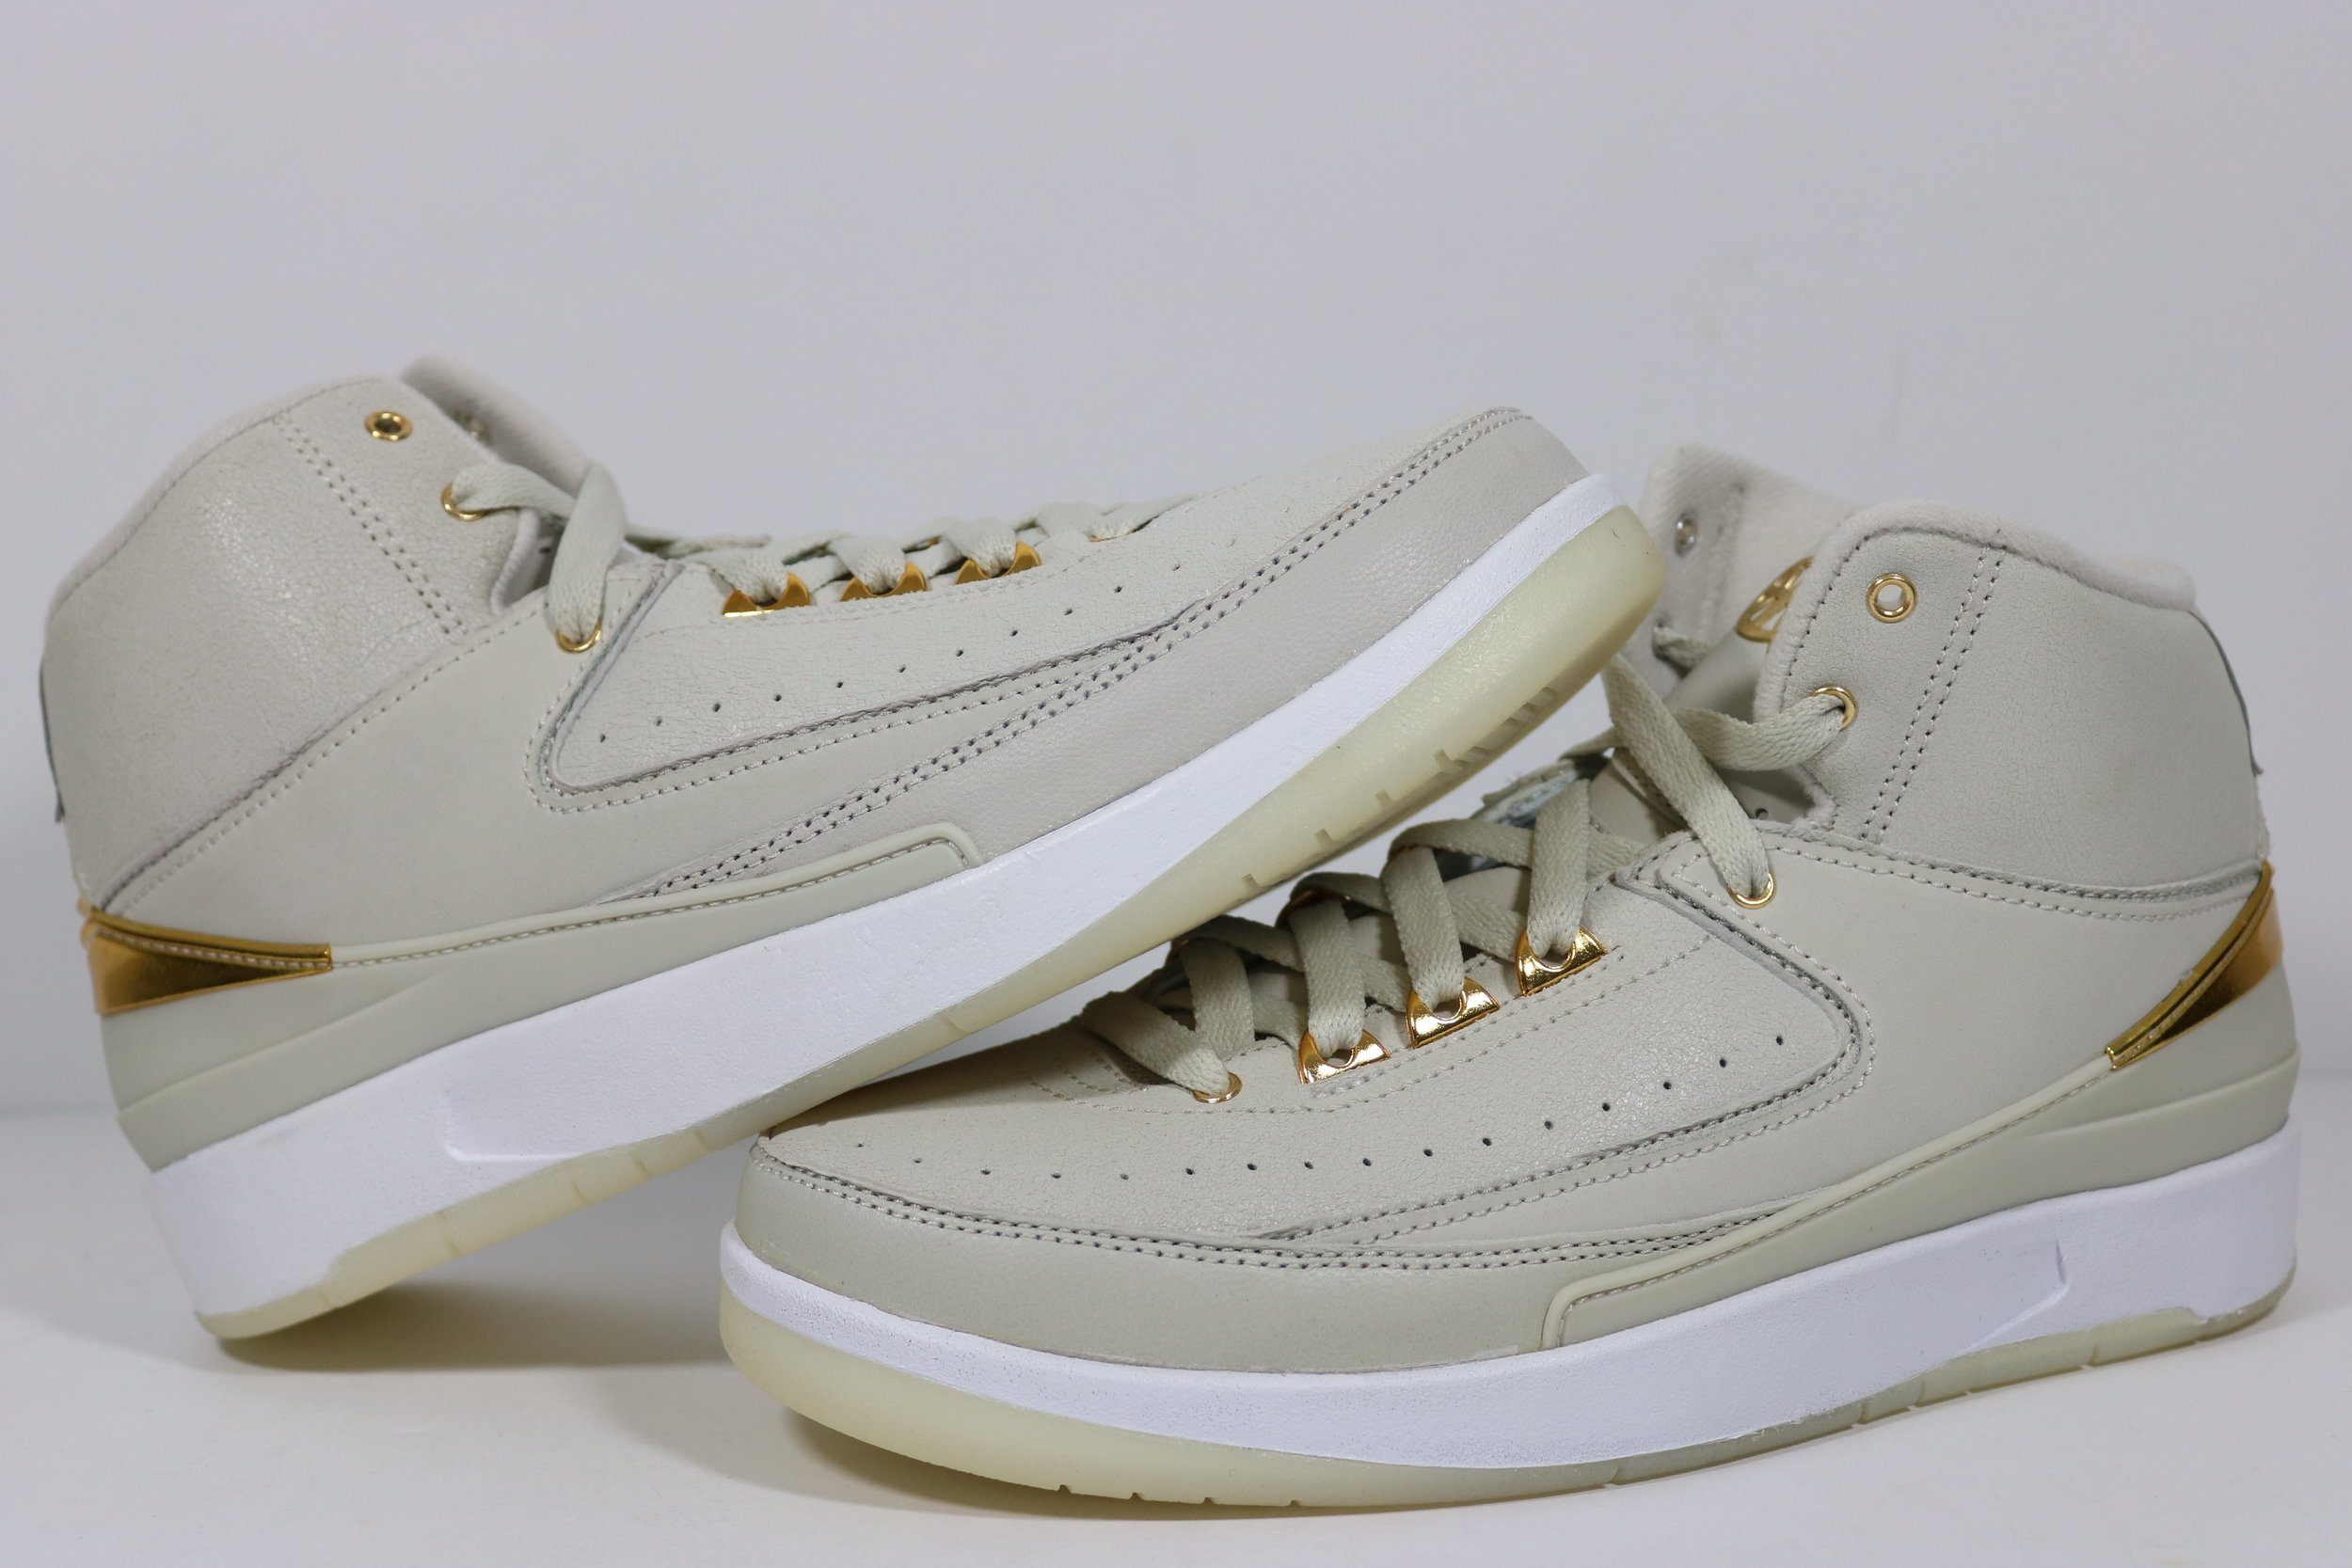 aac886611fa1 US 5.5Y - NIKE AIR JORDAN 2 RETRO BG Q54